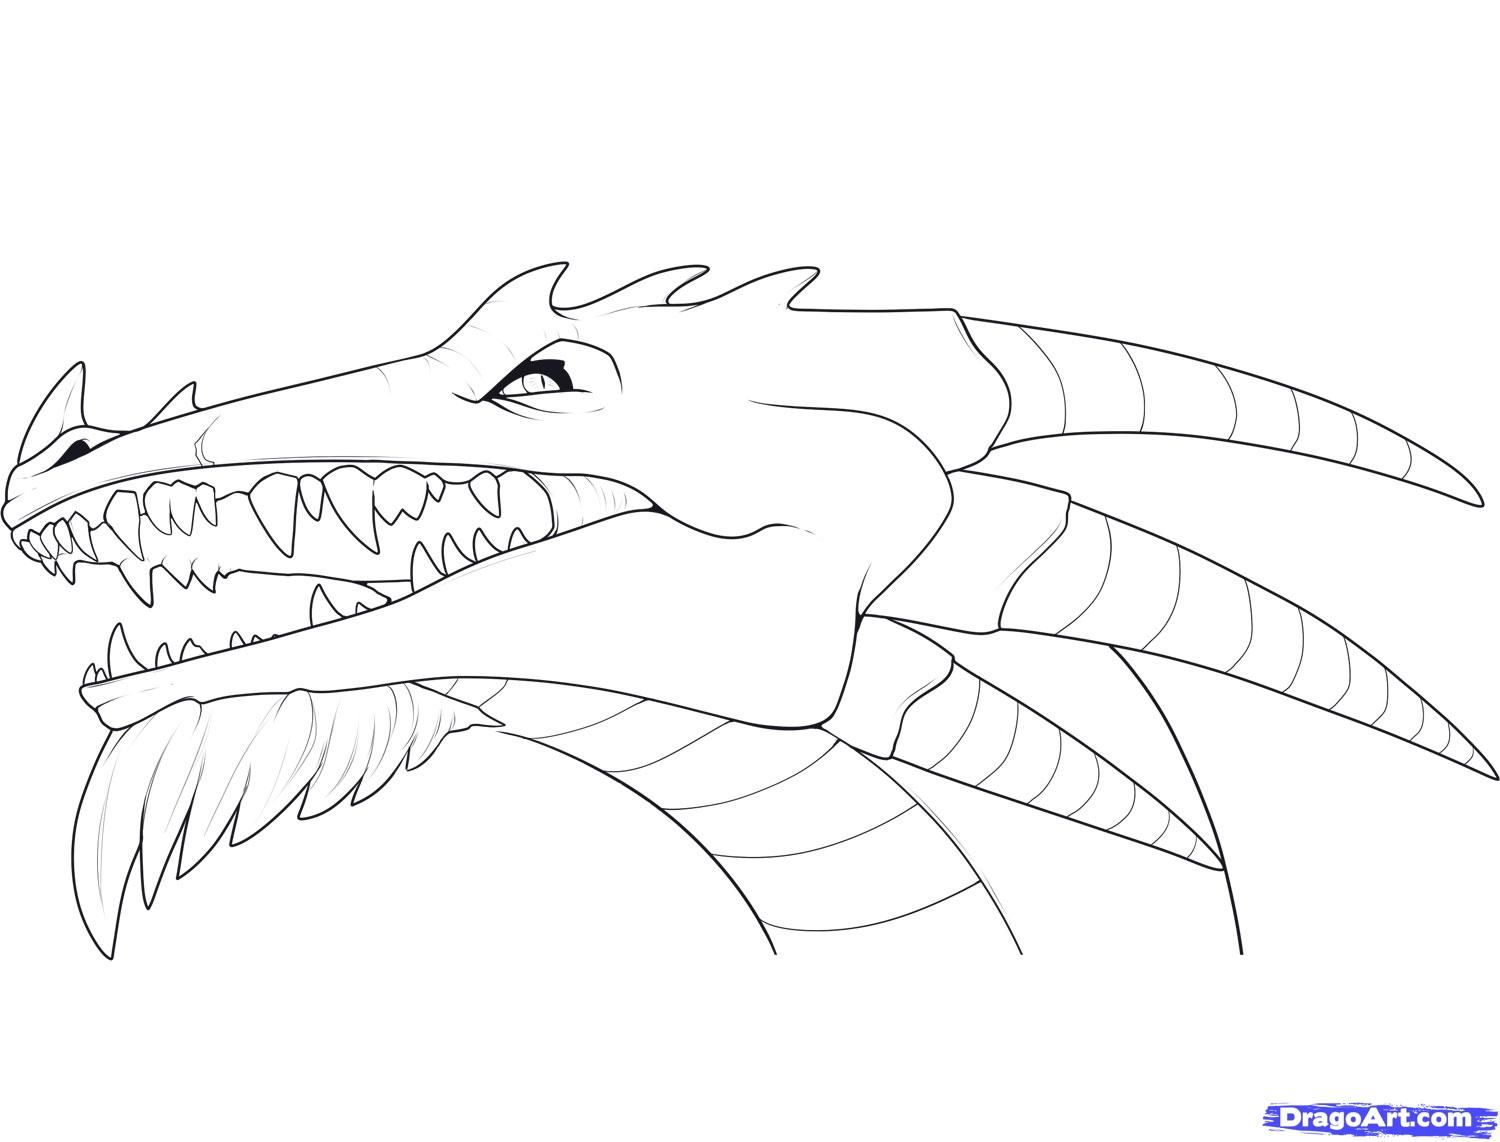 1500x1142 How To Draw Dragon Heads, Step By Step, Dragons, Draw A Dragon